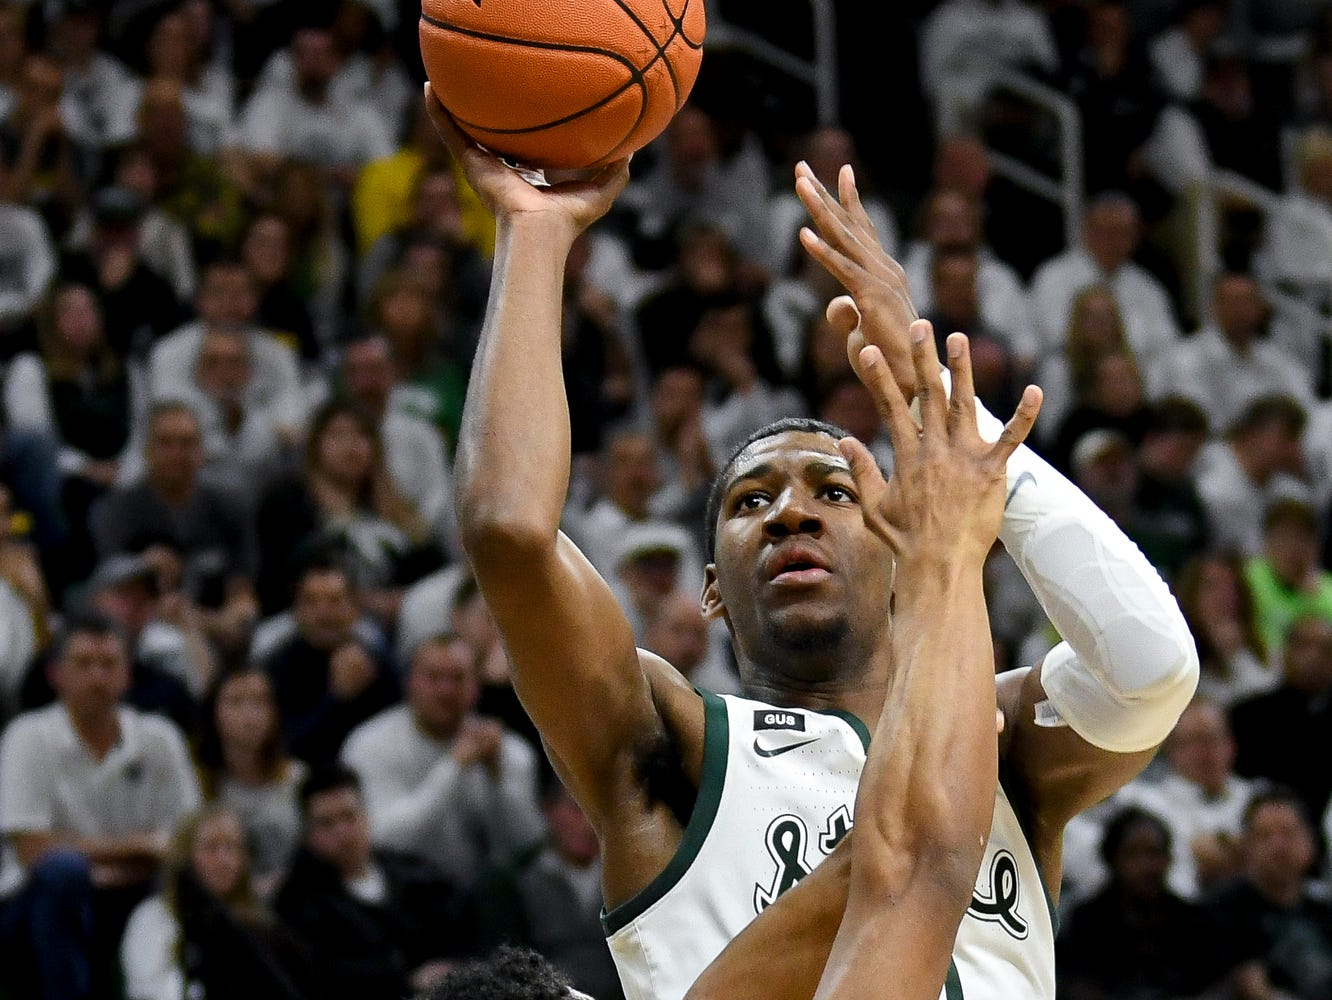 Michigan State's Aaron Henry shoots as Michigan's David DeJulius defends during the first half on Saturday, March 9, 2019, at the Breslin Center in East Lansing.